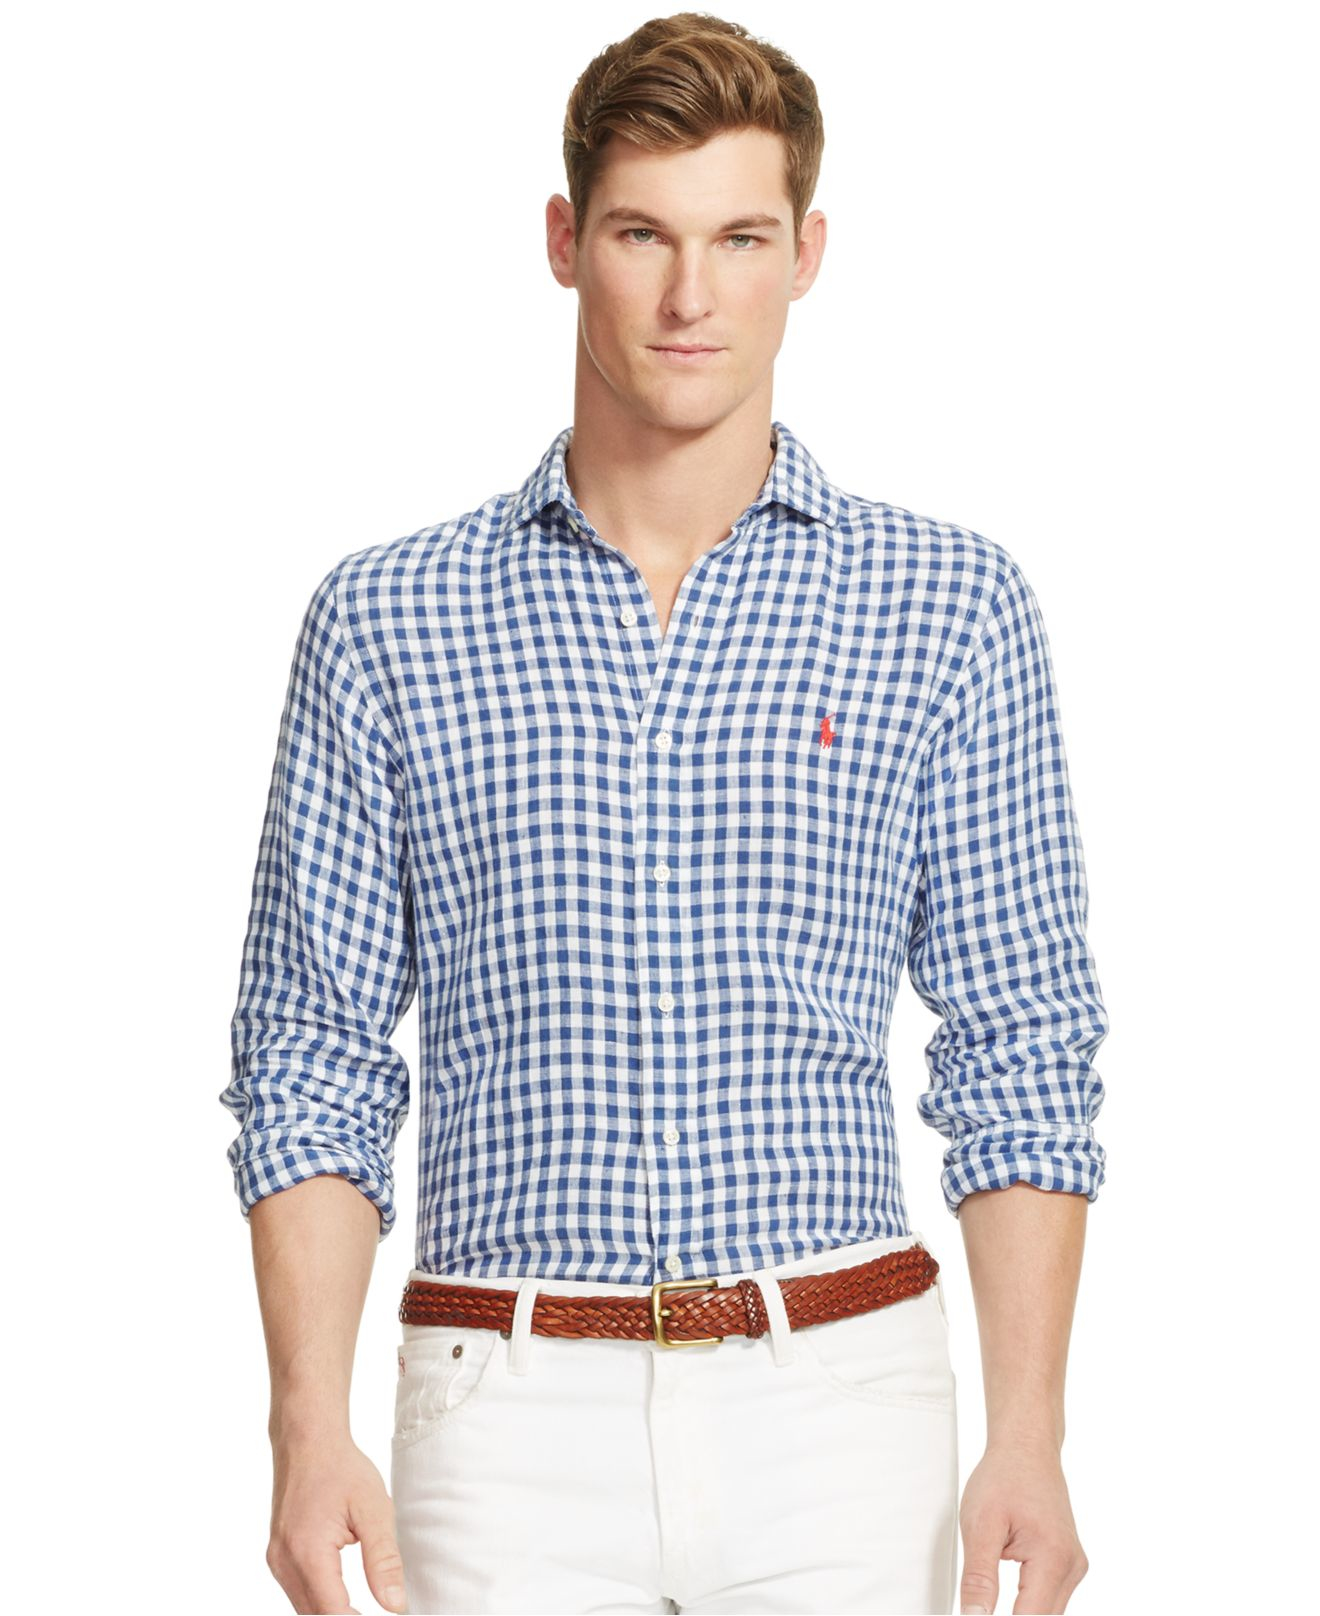 Polo ralph lauren shirt in slim fit blue gingham check in for Mens blue gingham shirt